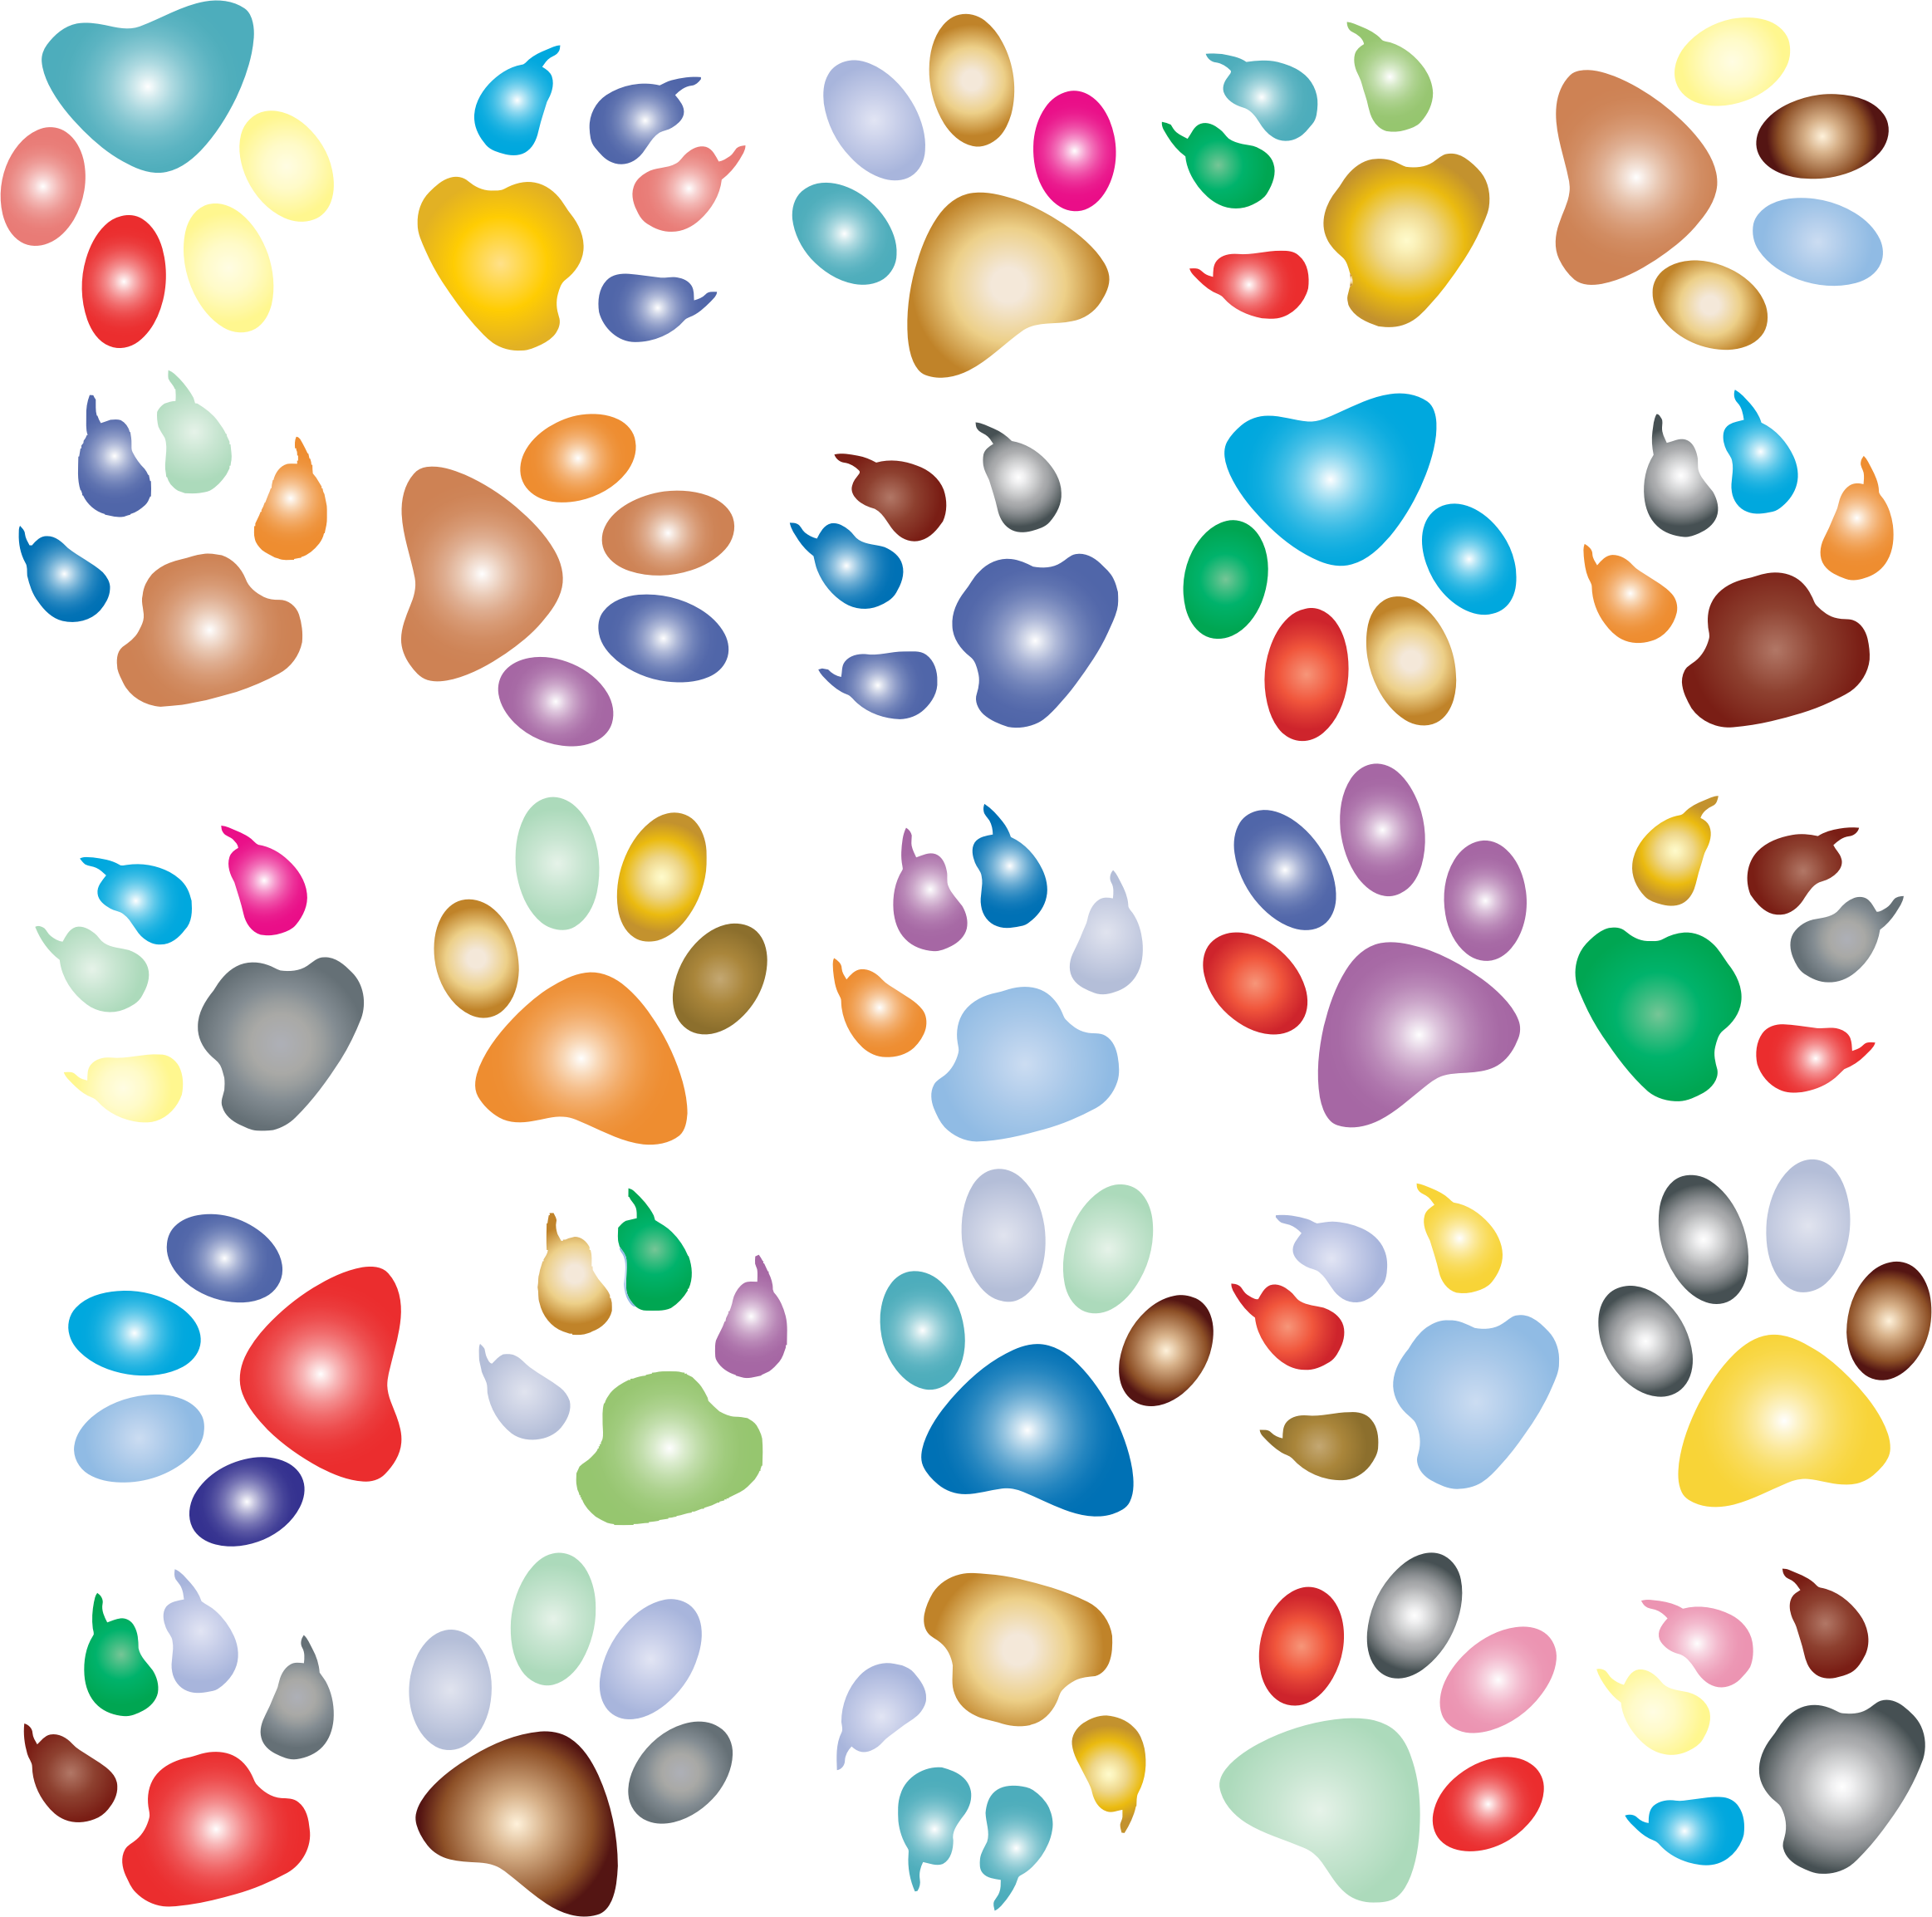 Colorful Paw Prints Pattern Background Reinvigorated 2 No Black background by GDJ